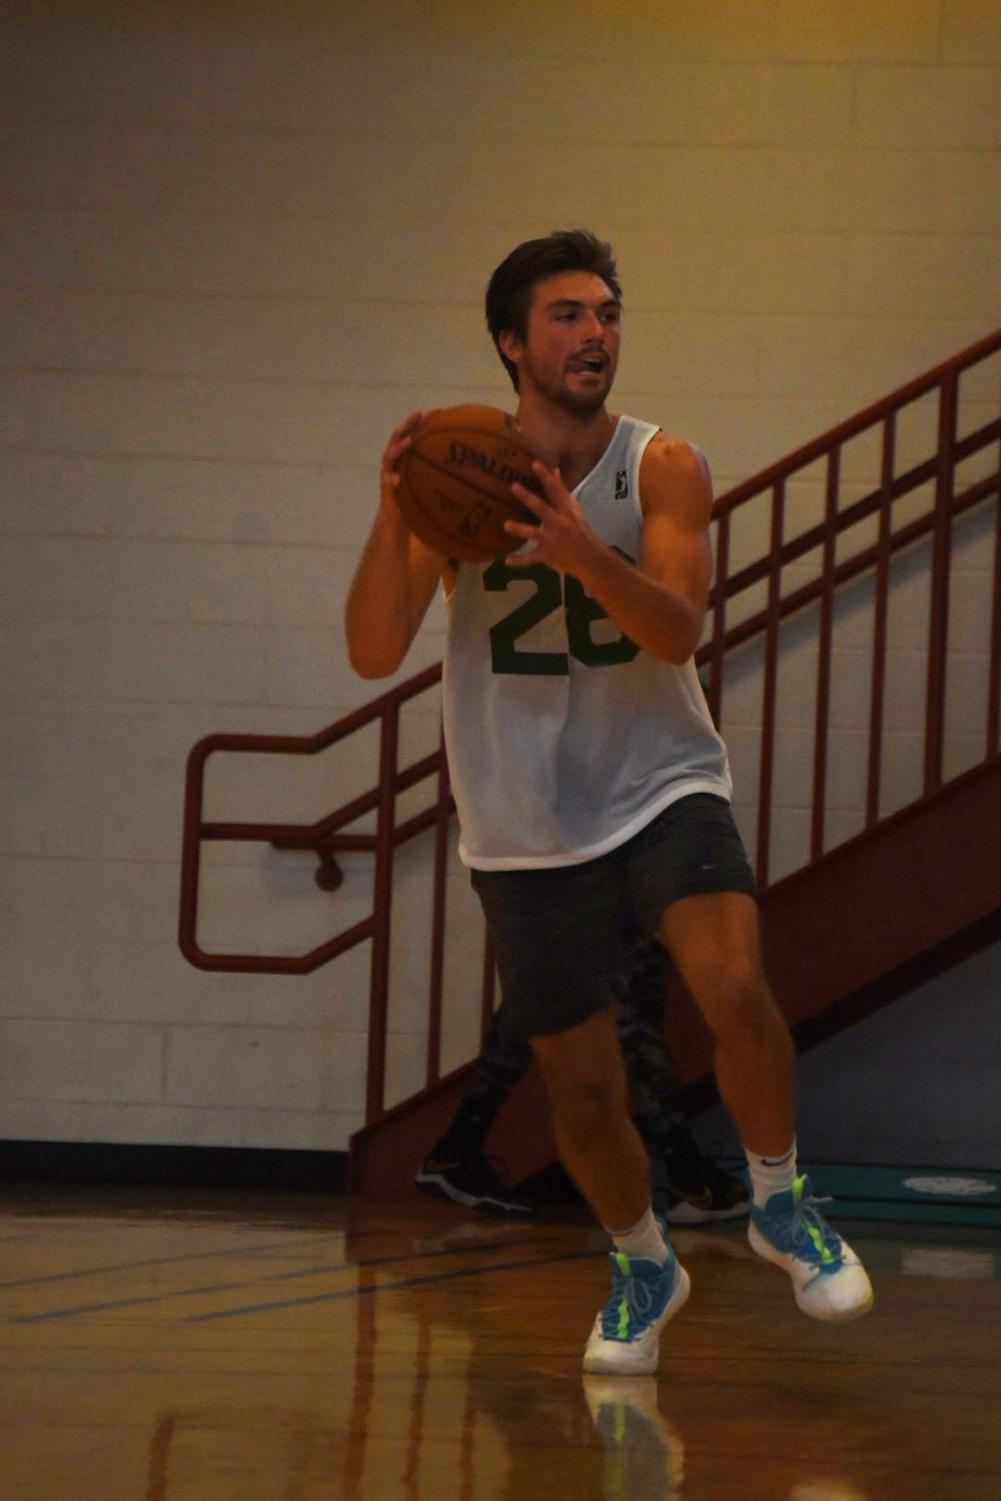 Former UWO athlete Brett Wittchow looks to pass downcourt at the Wisconsin Herd tryout on Sept. 14.